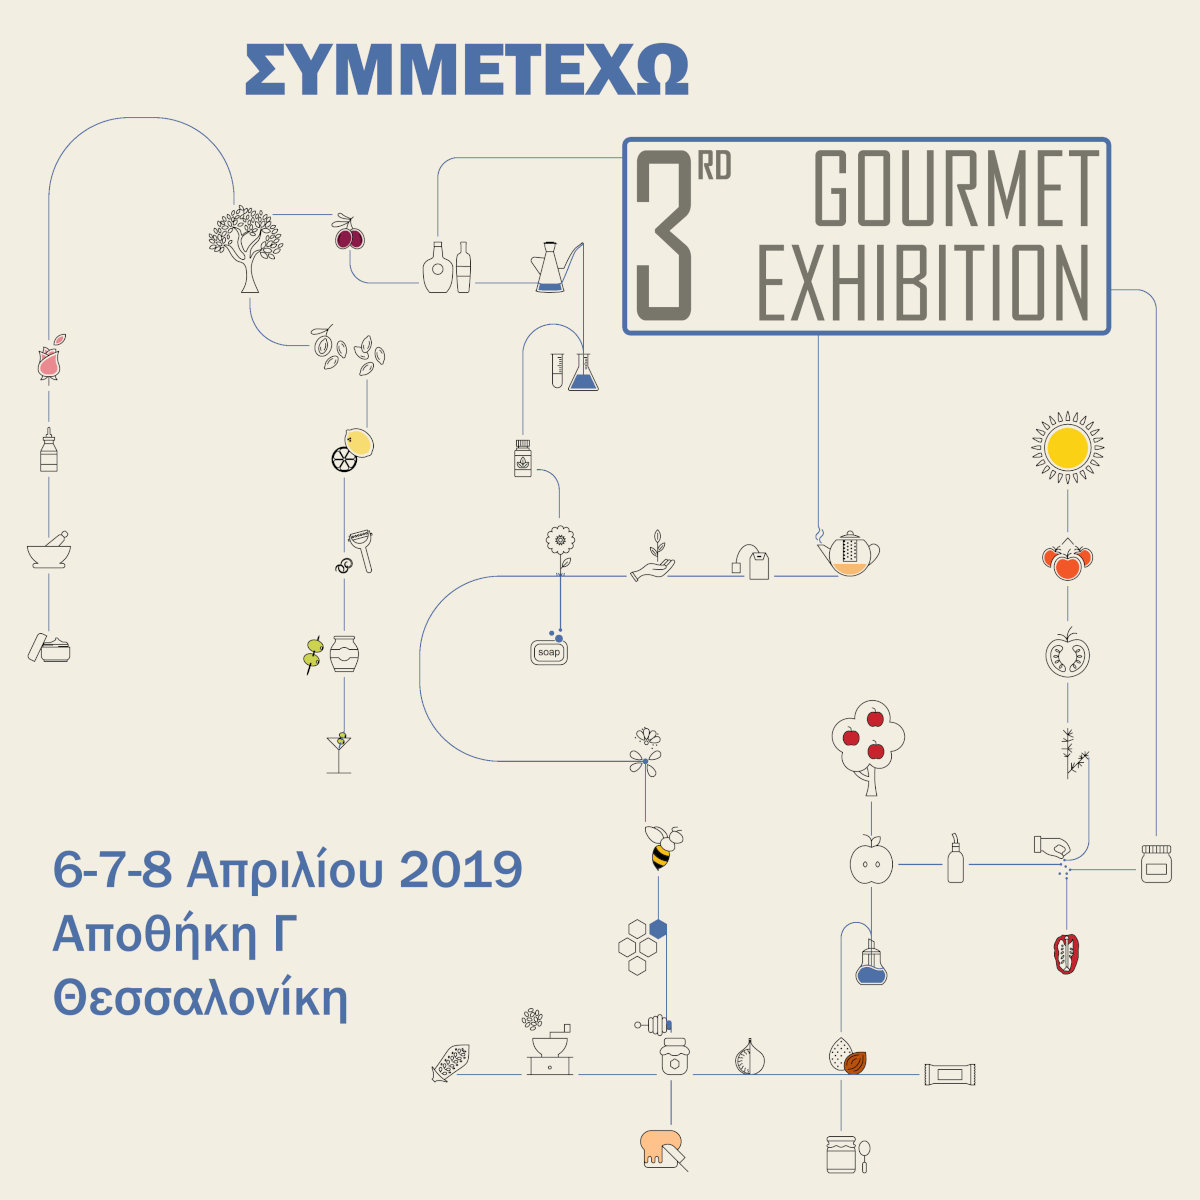 3rd Gourmet Exhibition